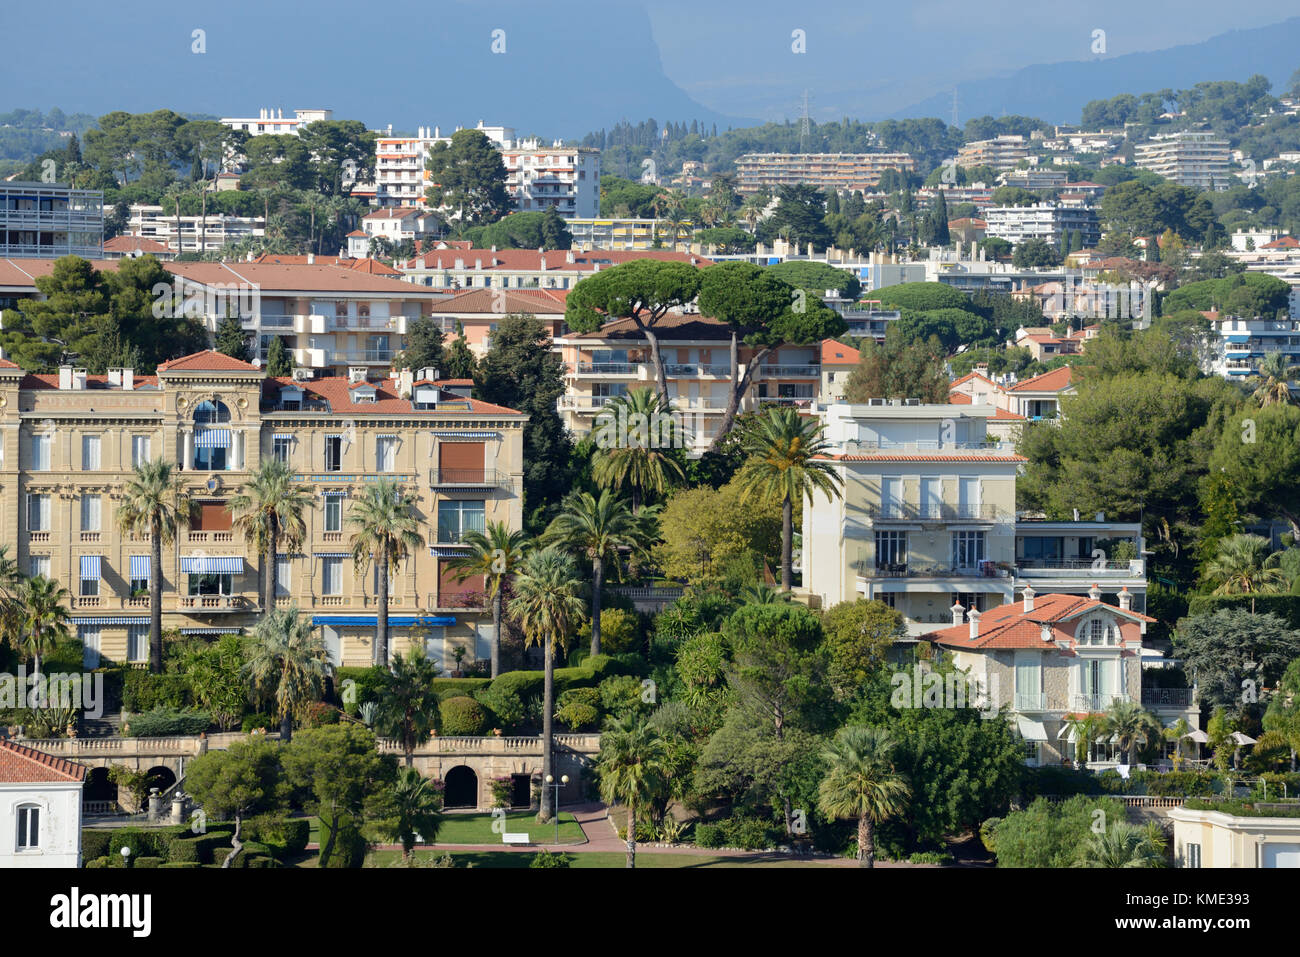 Aerial View over Historic Up-Market District in Cannes, with Belle Epoque Properties, Alpes-Maritimes, France - Stock Image